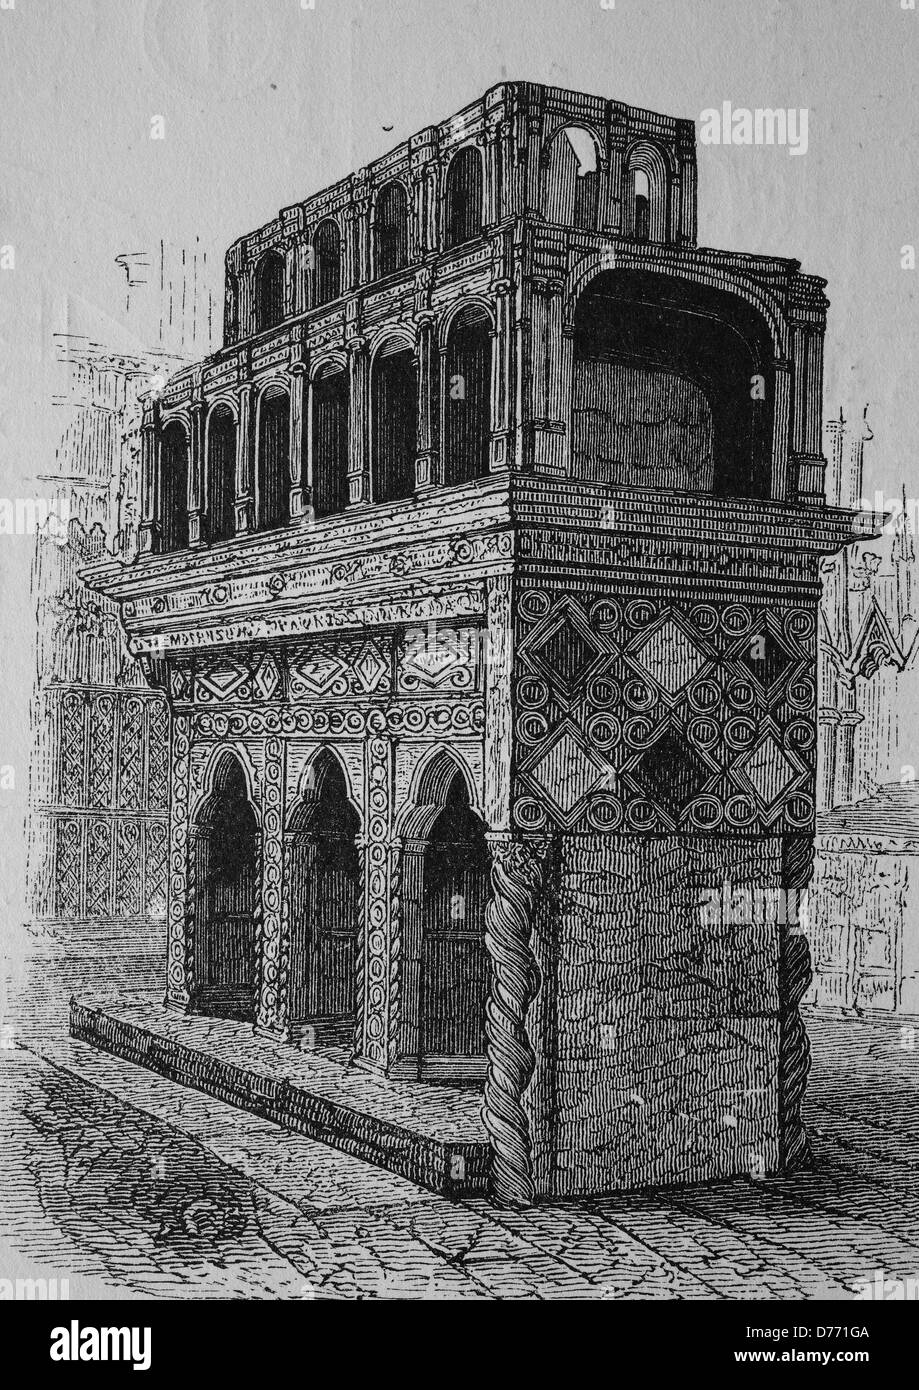 Tomb of Edward the Confessor, 1004 - 1066, King of England, Westminster, historical woodcut, circa 1870 - Stock Image